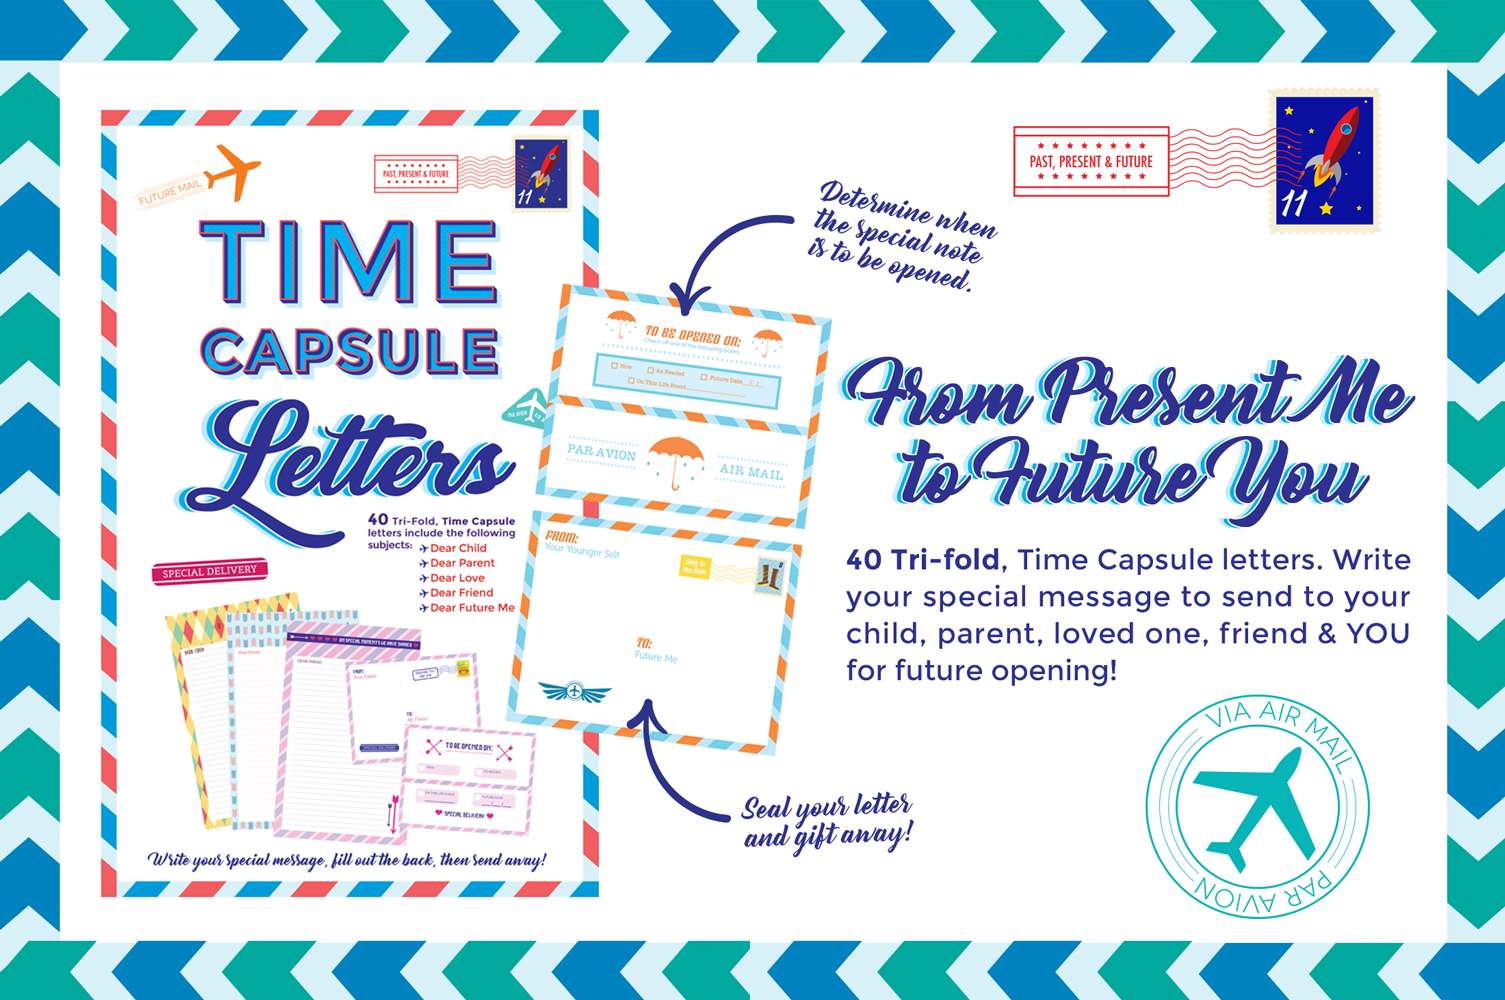 Time-capsule-letters_web-comp